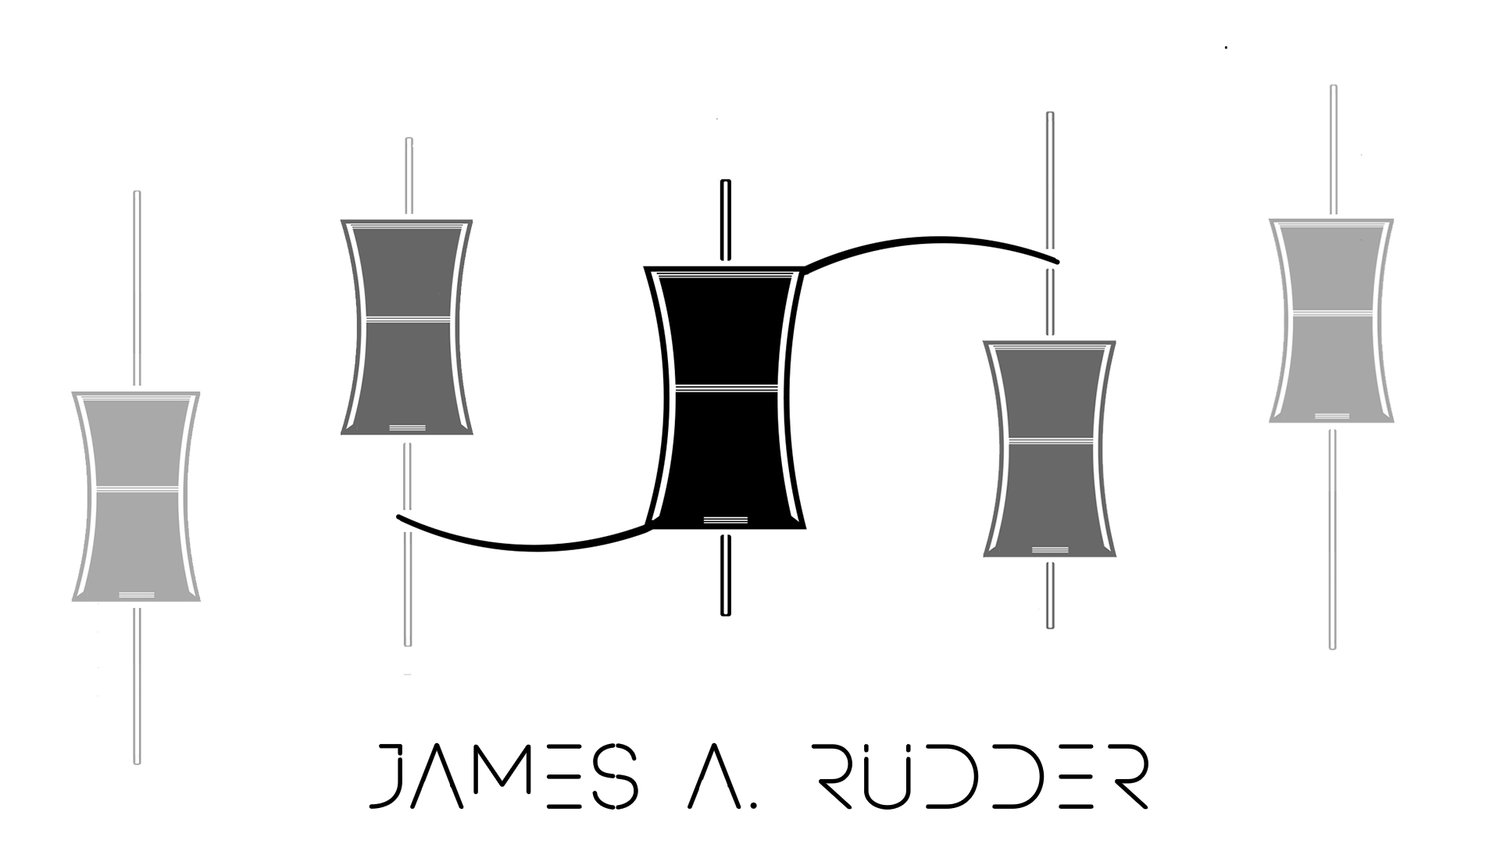 James Rudder